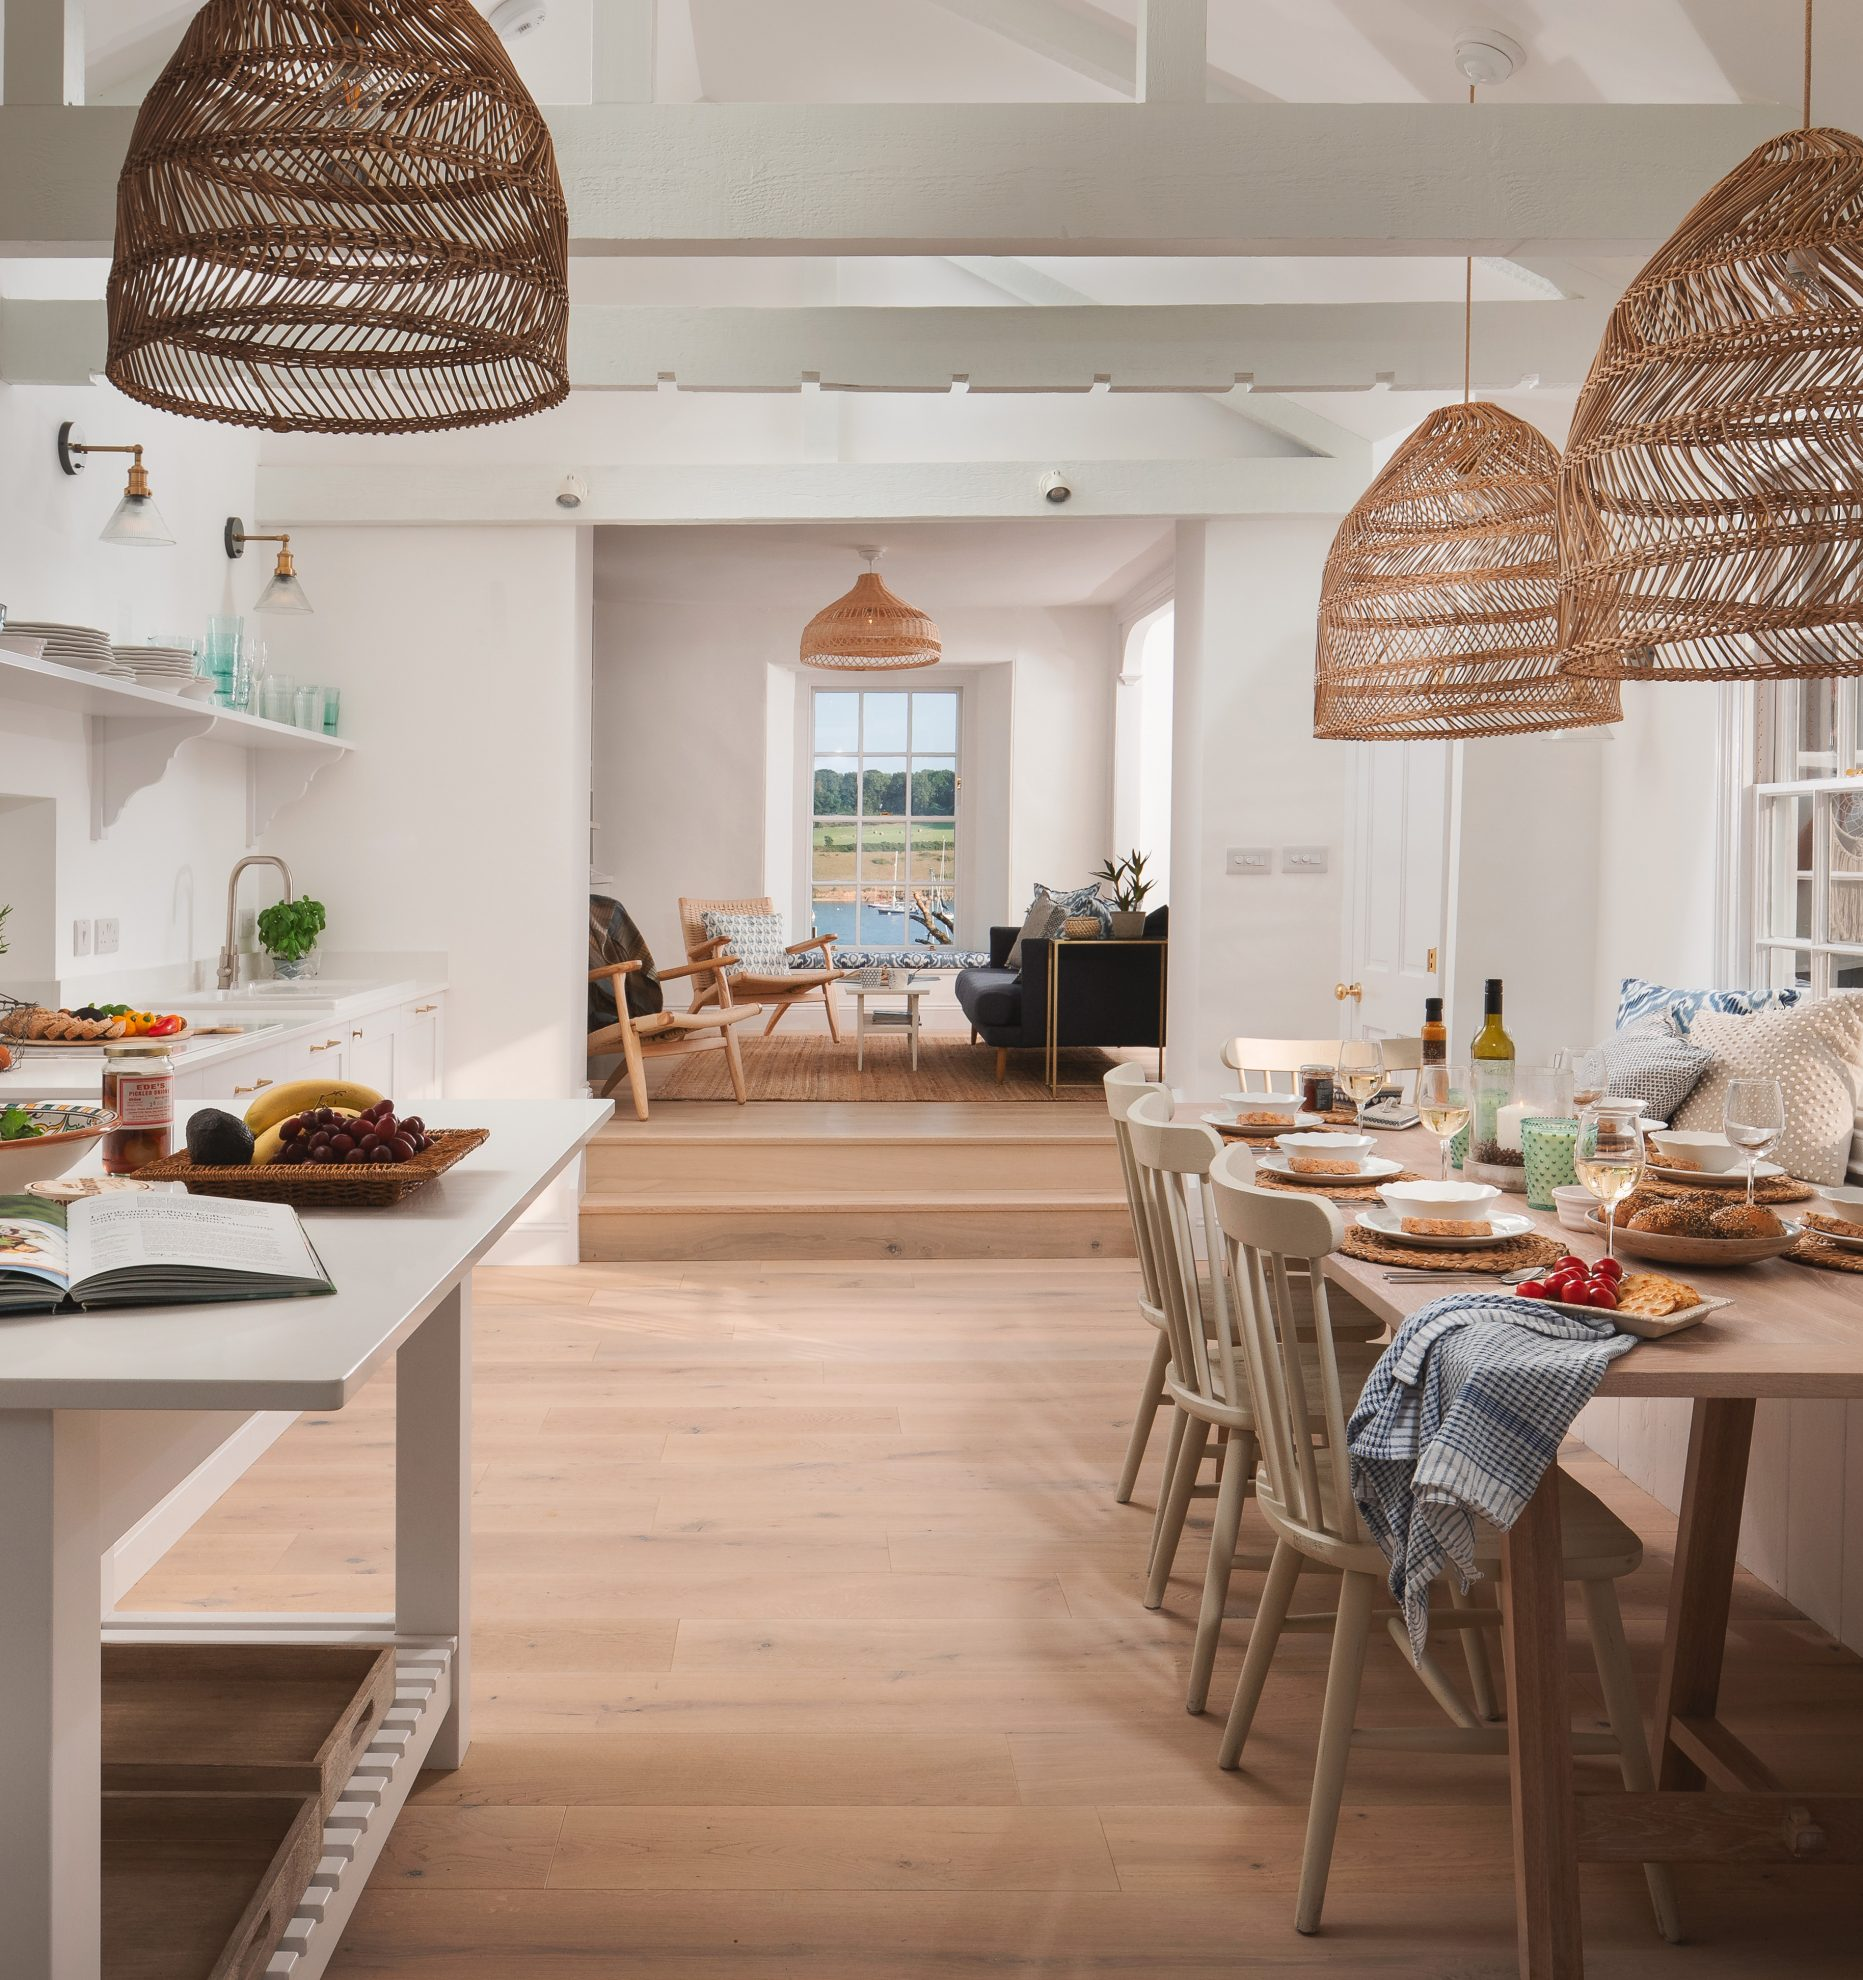 Residential kitchen and diner - Residential Architects in Cornwall, Truro